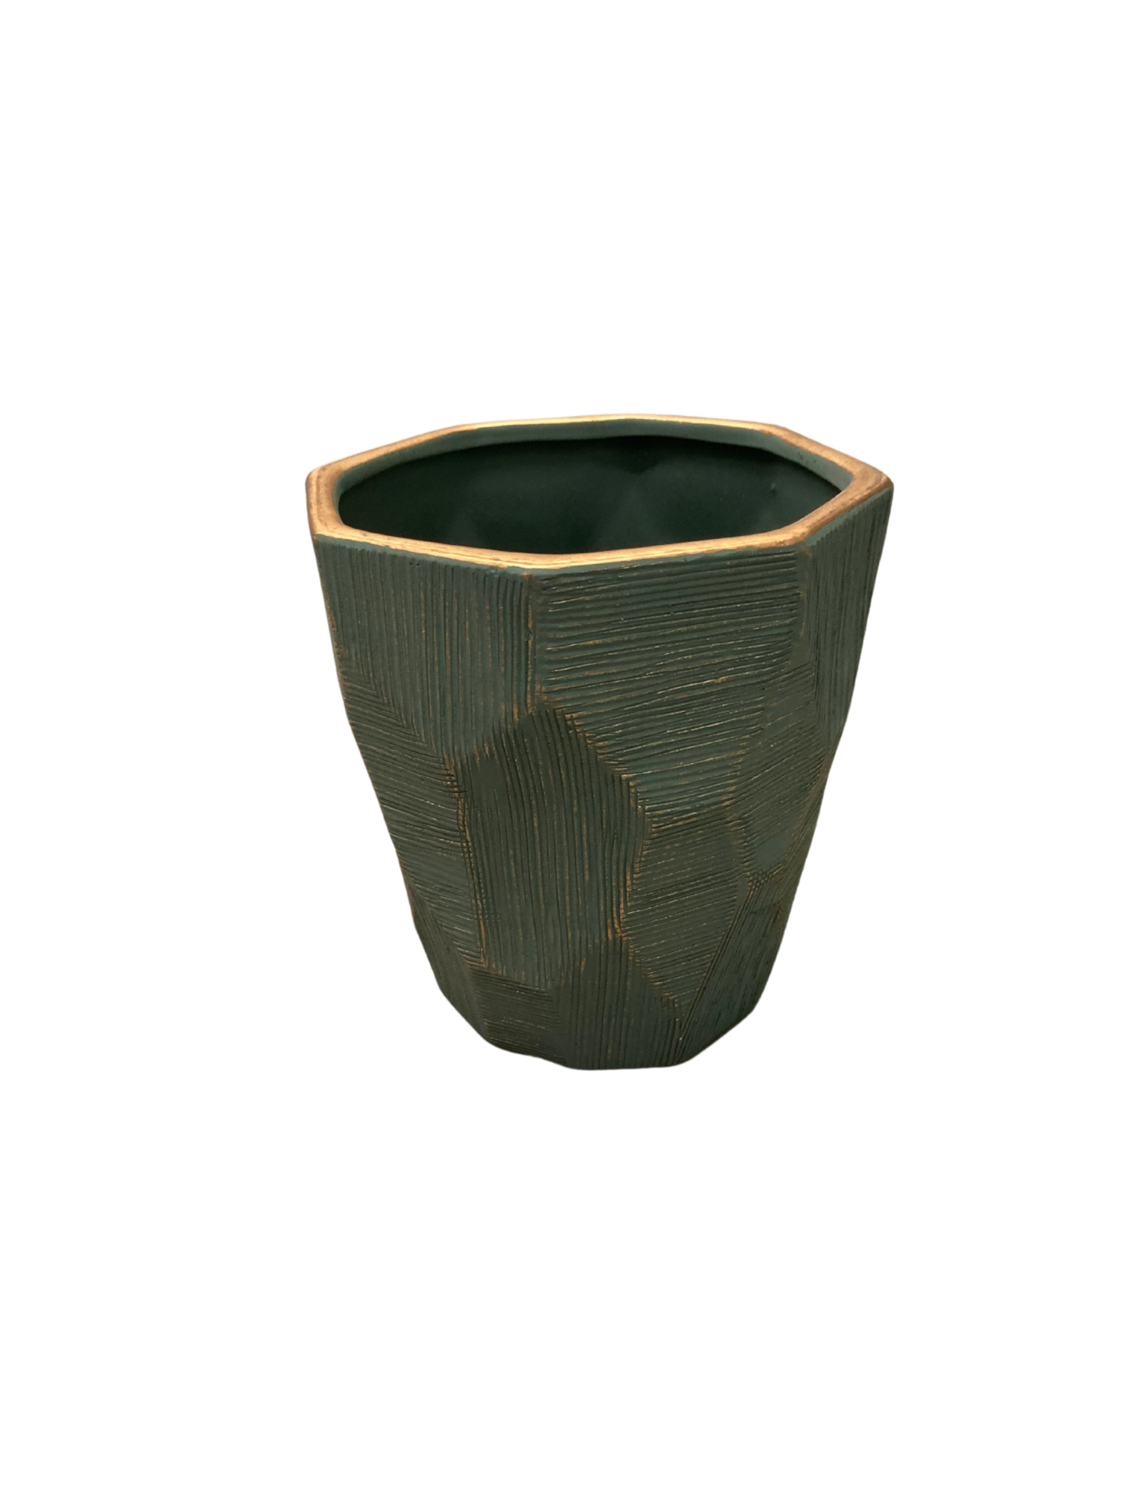 Green with Gold Pot